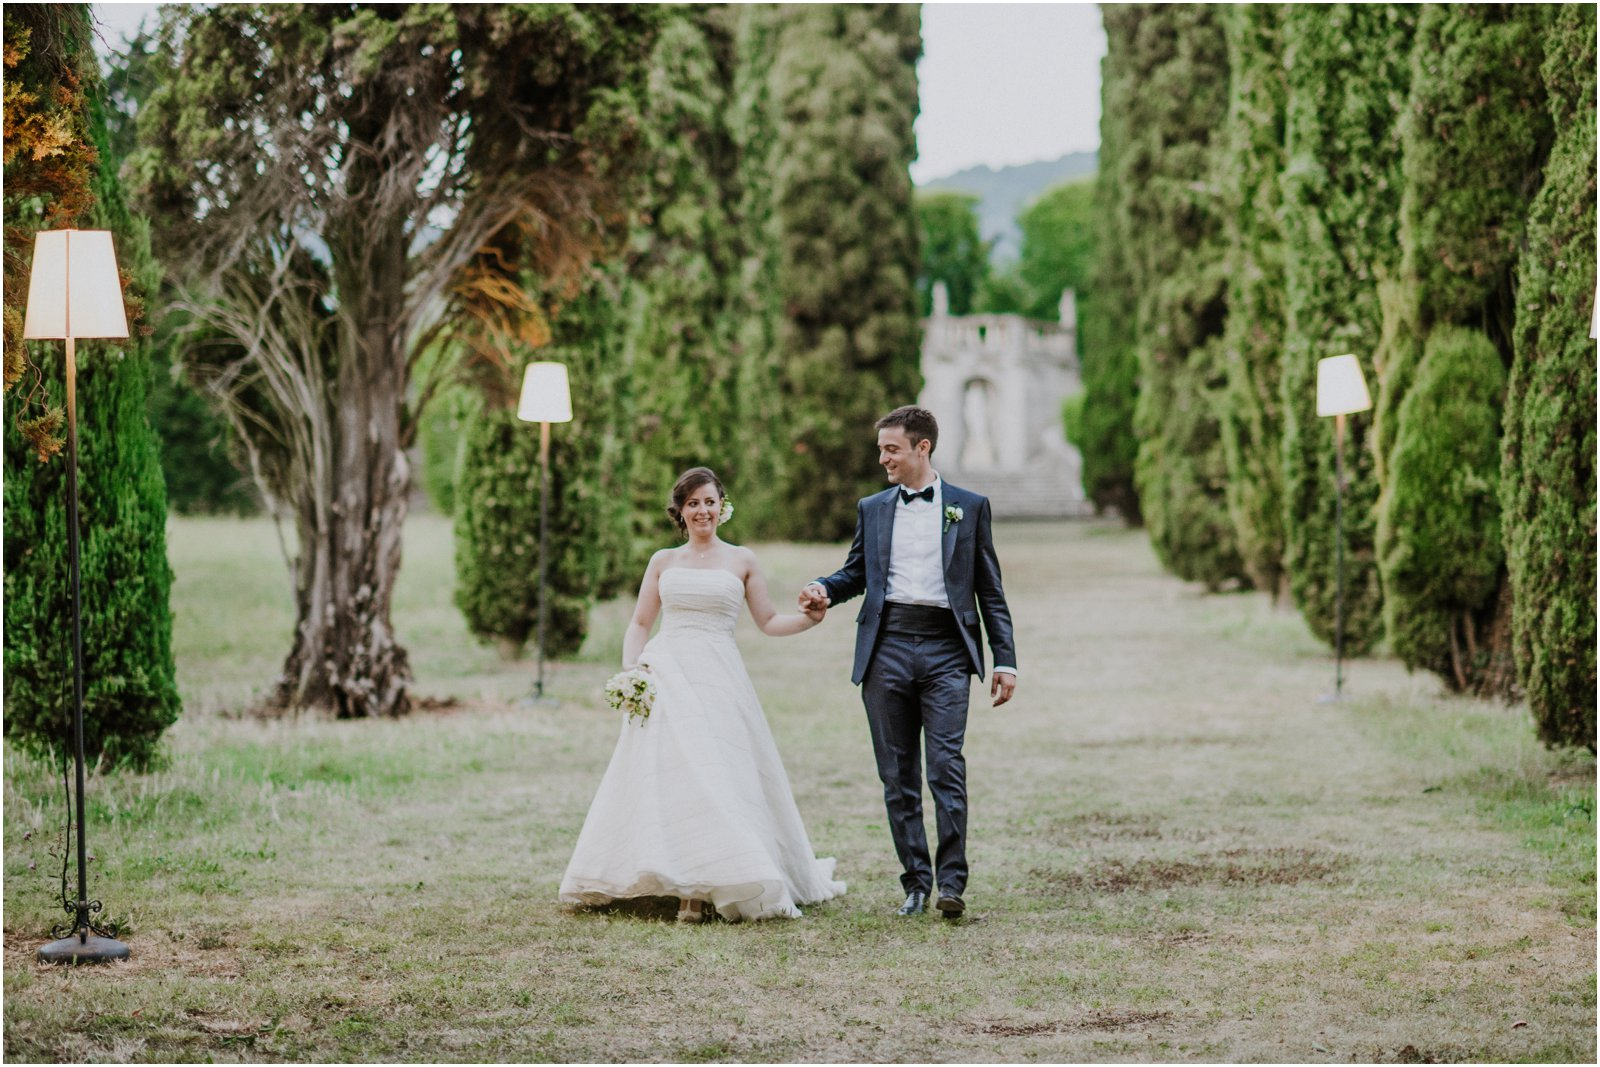 veronasposi foto e video matrimonio verona_0585